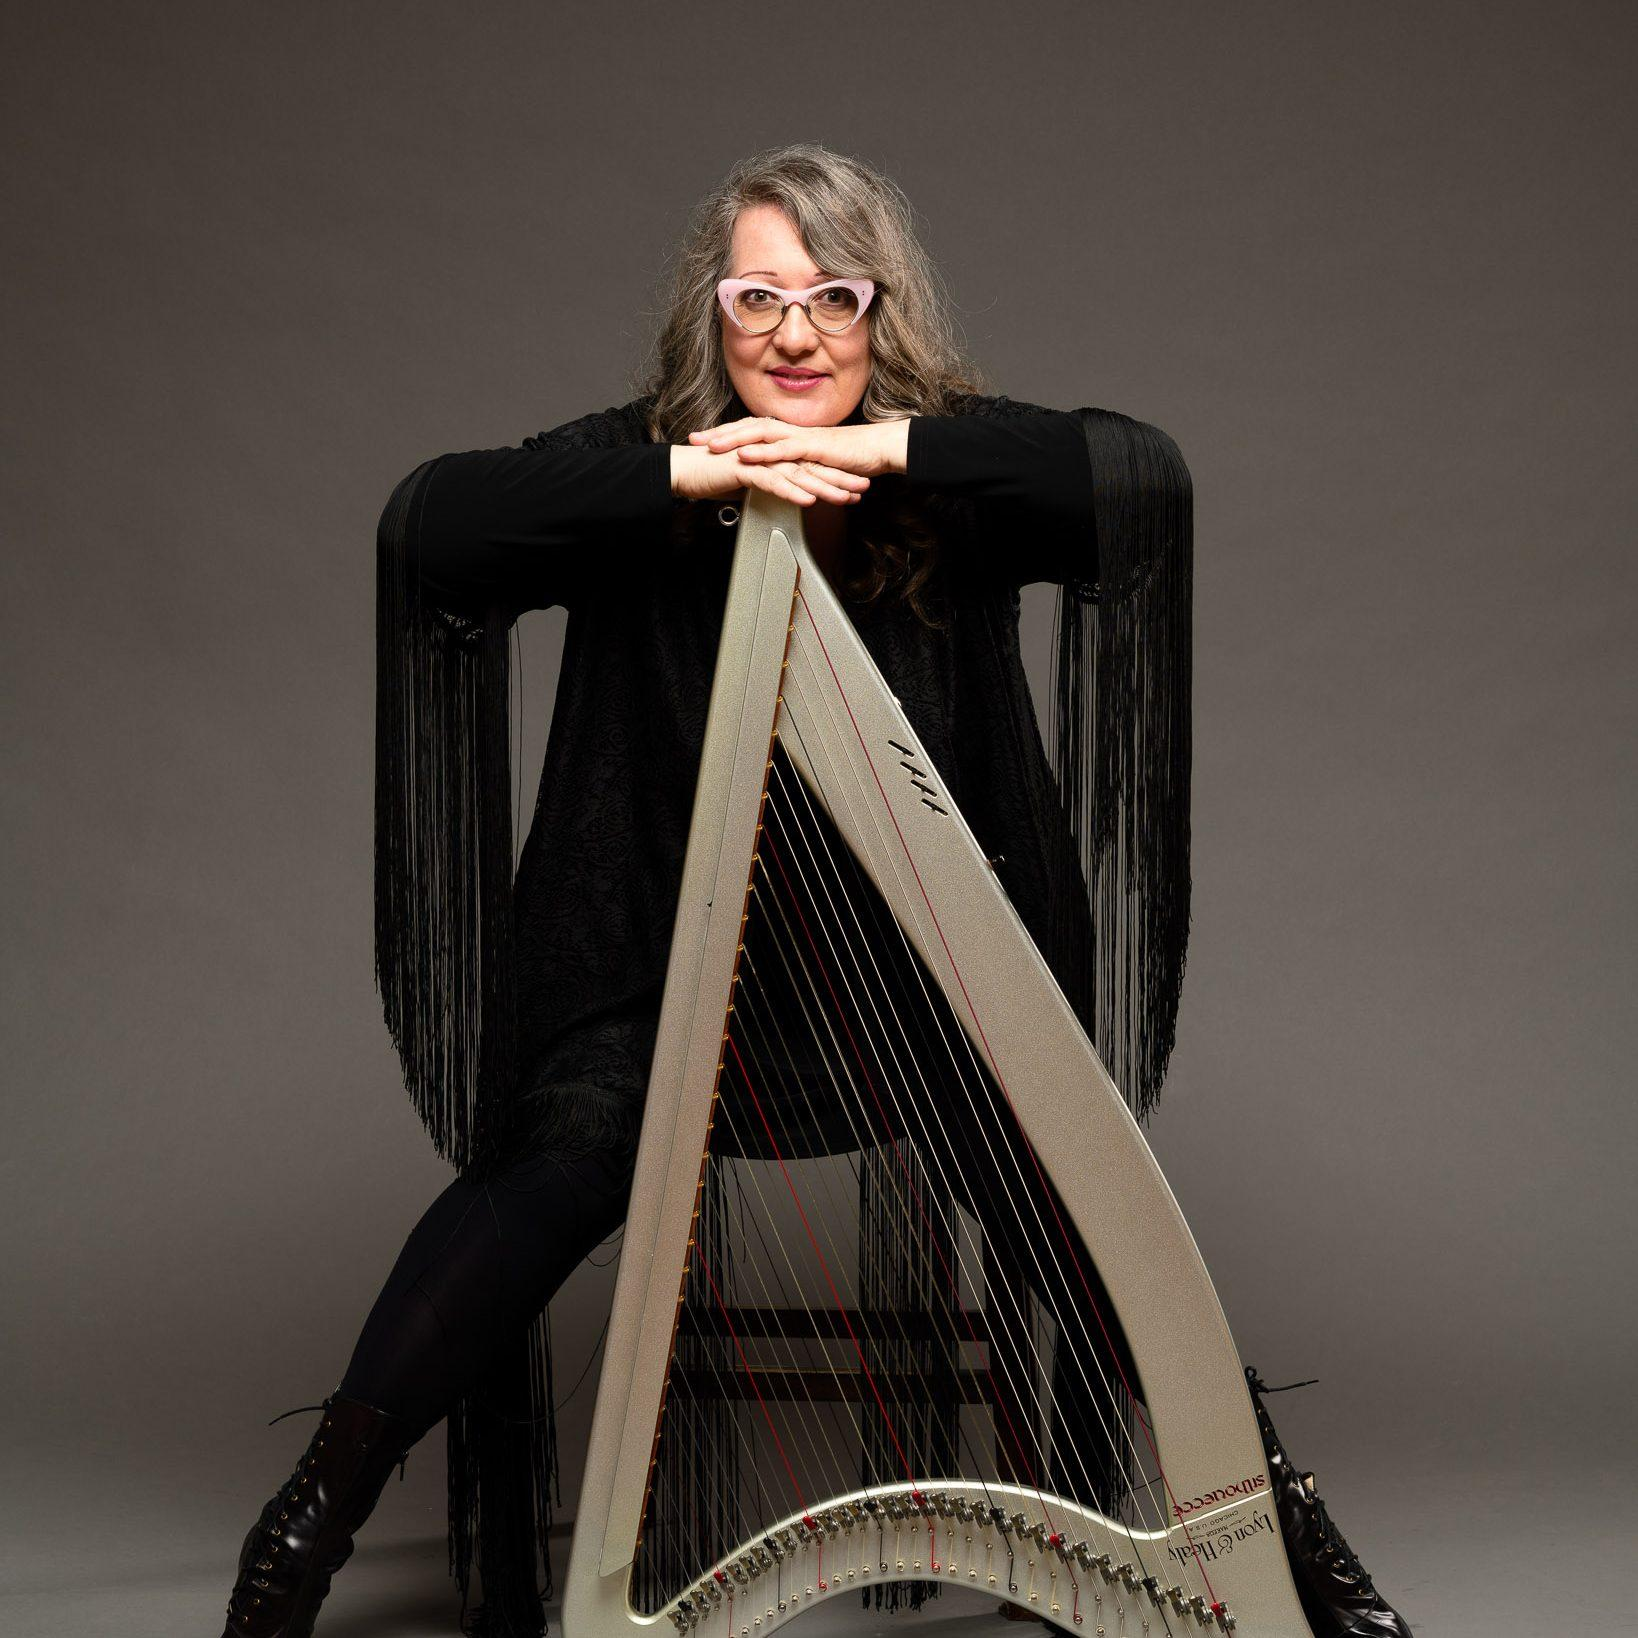 HARP CONCERT with Sharlene Wallace & Harp Duo Mackay and Ord